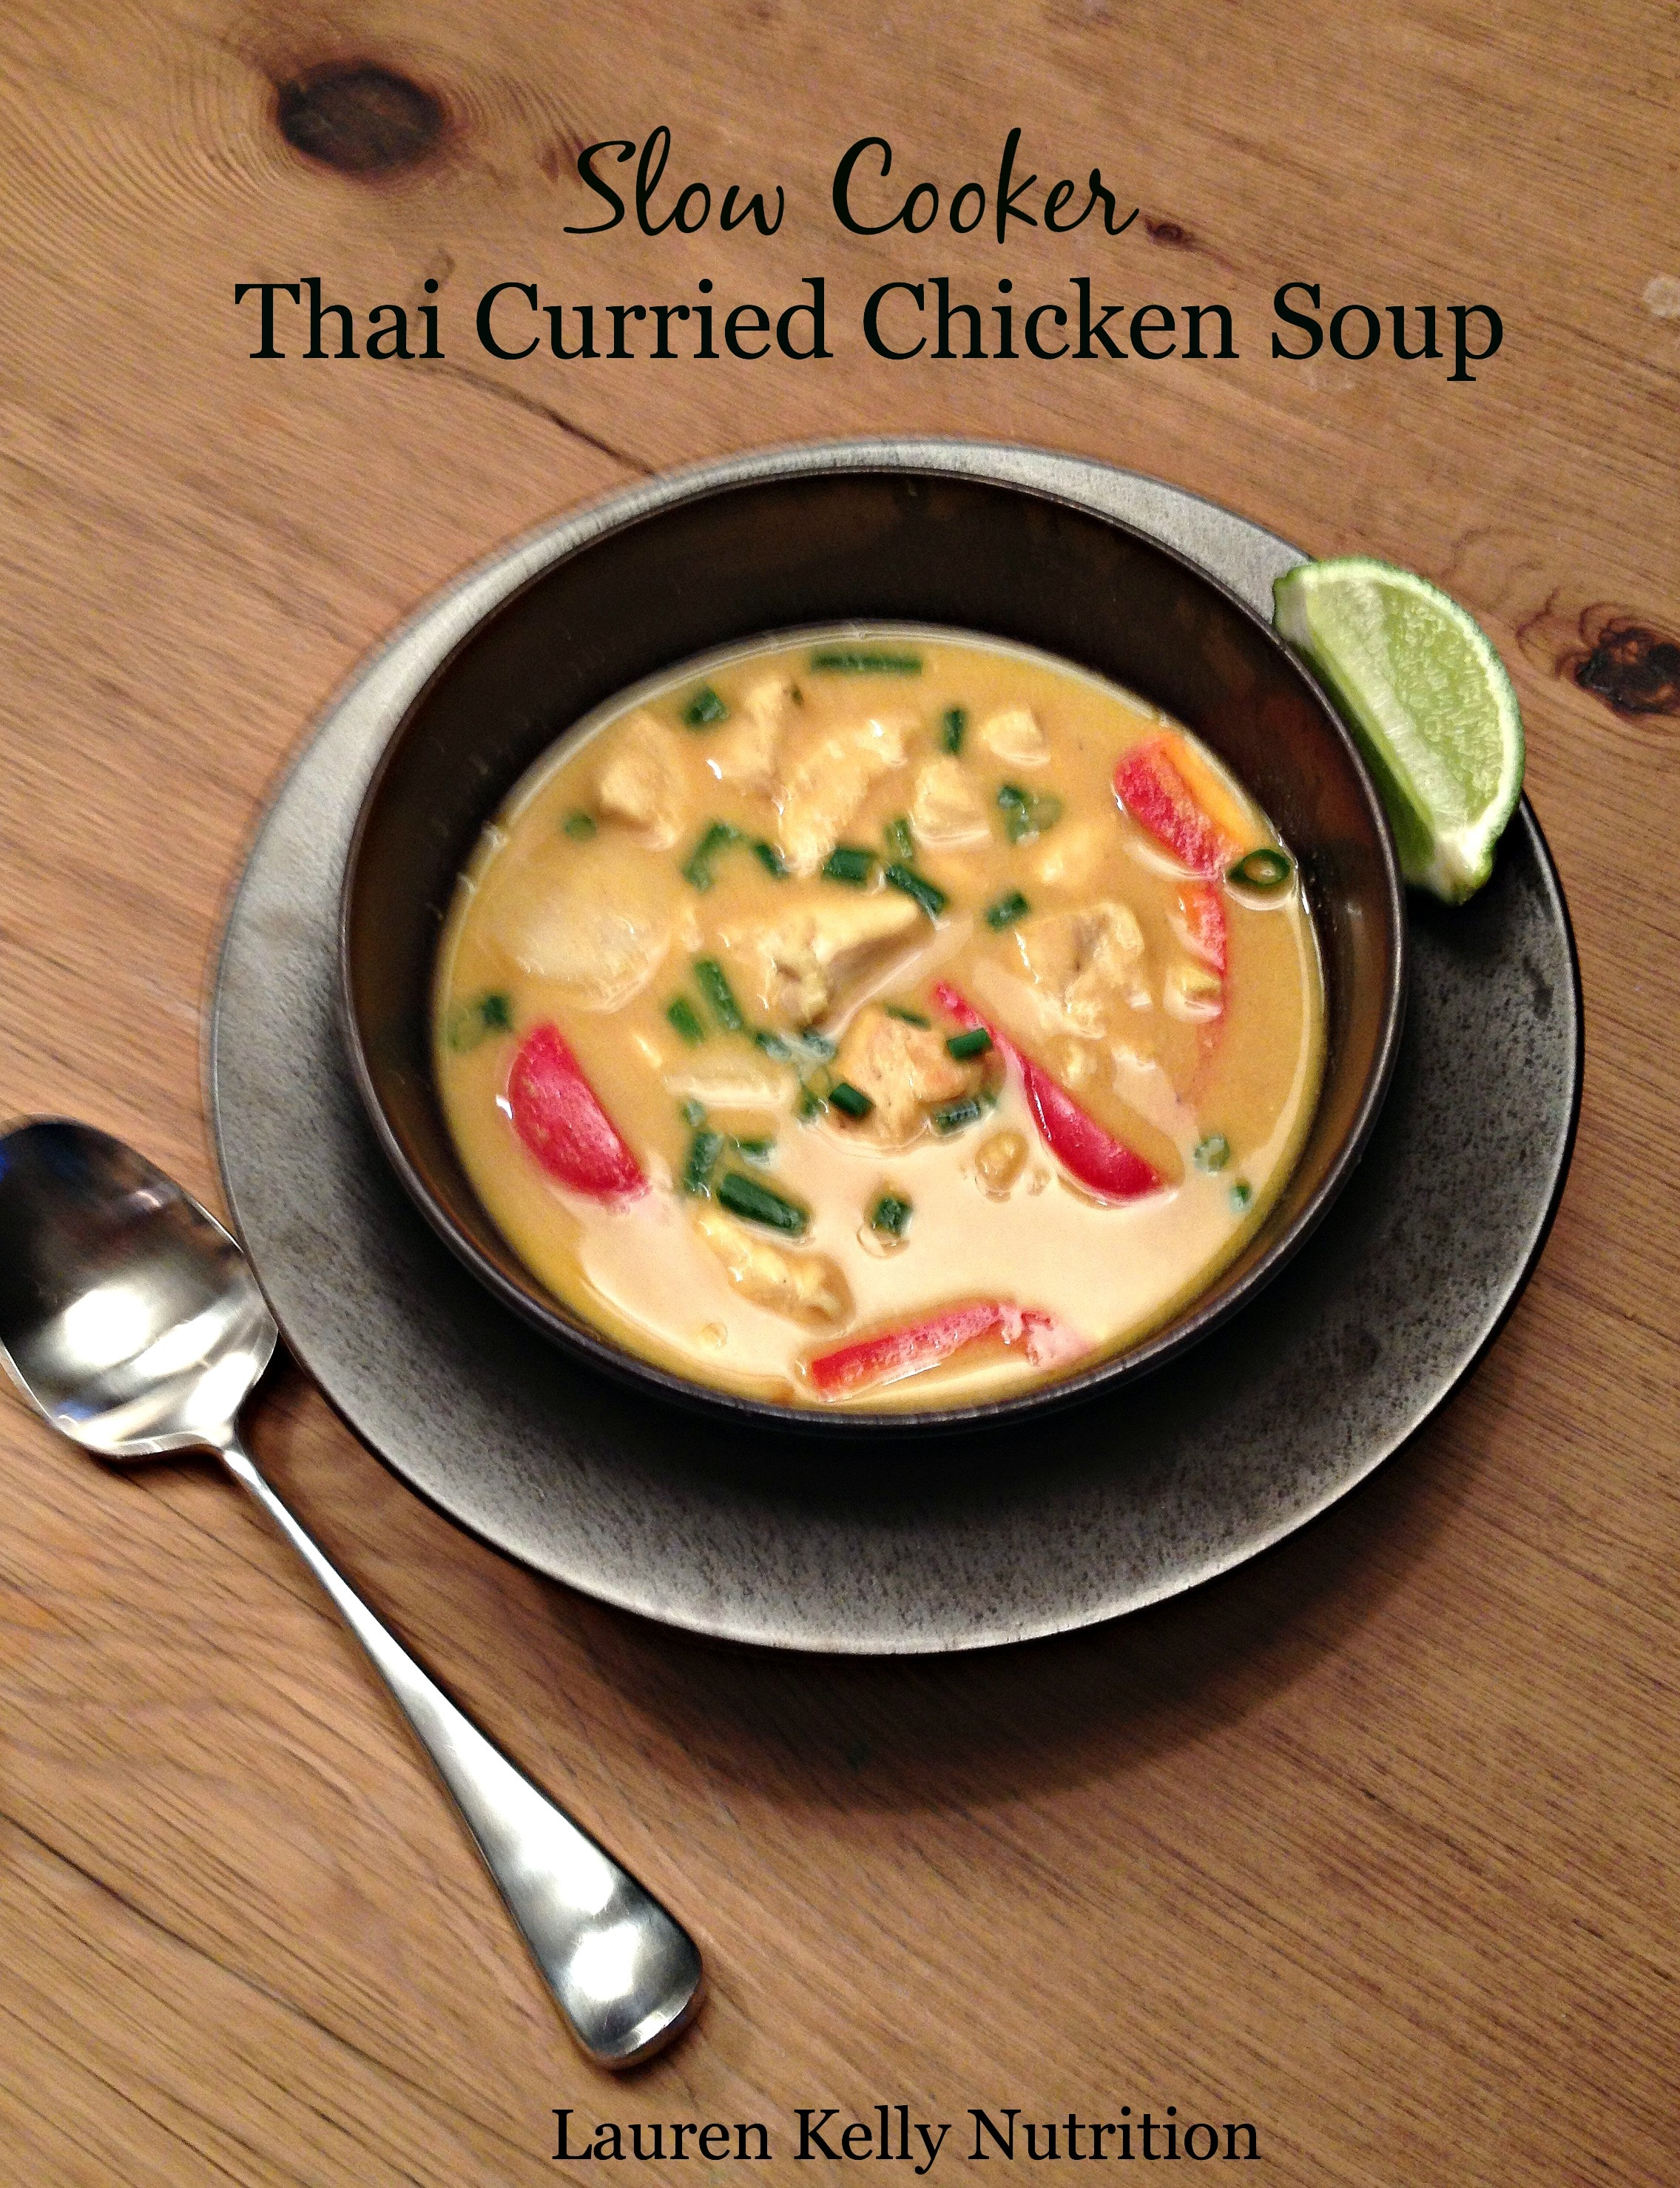 Delicious and simple to make comfort food! This Slow Cooker Thai Curried Chicken Soup is the perfect low carb dinner.